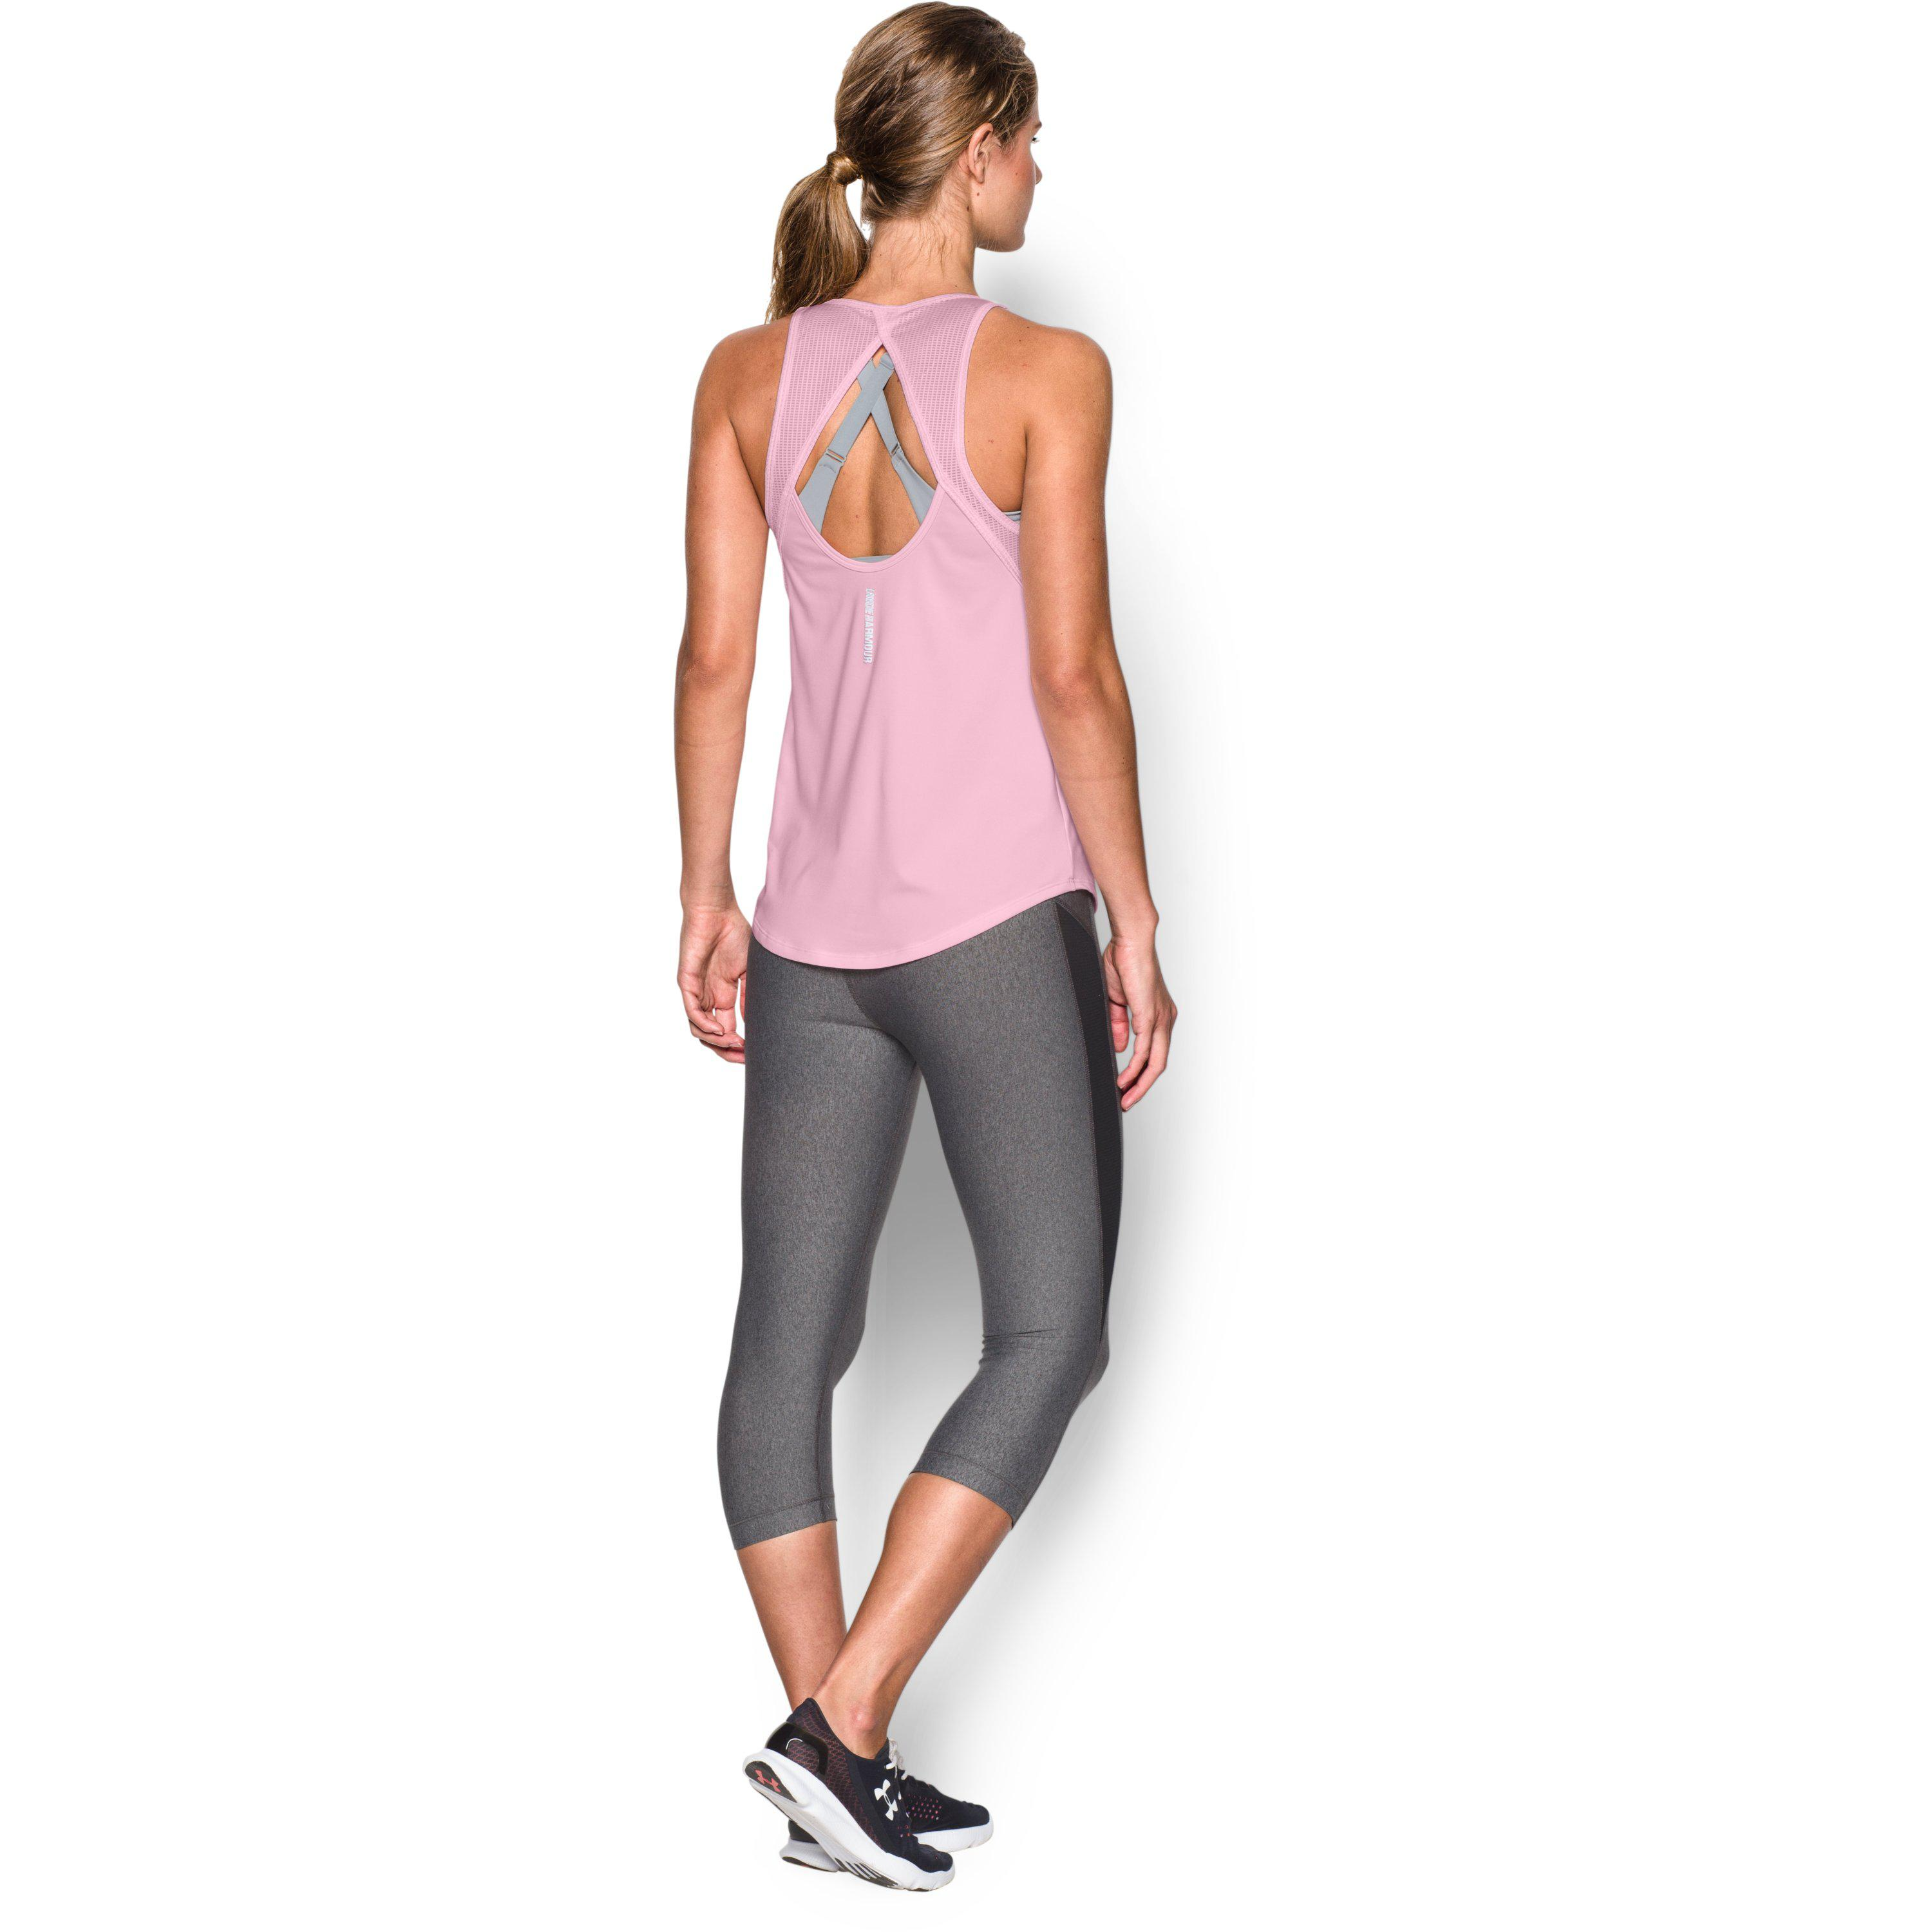 49baca3bbd3ab2 Under Armour Women's Ua Fly-by 2.0 Fitted Tank in Black - Lyst